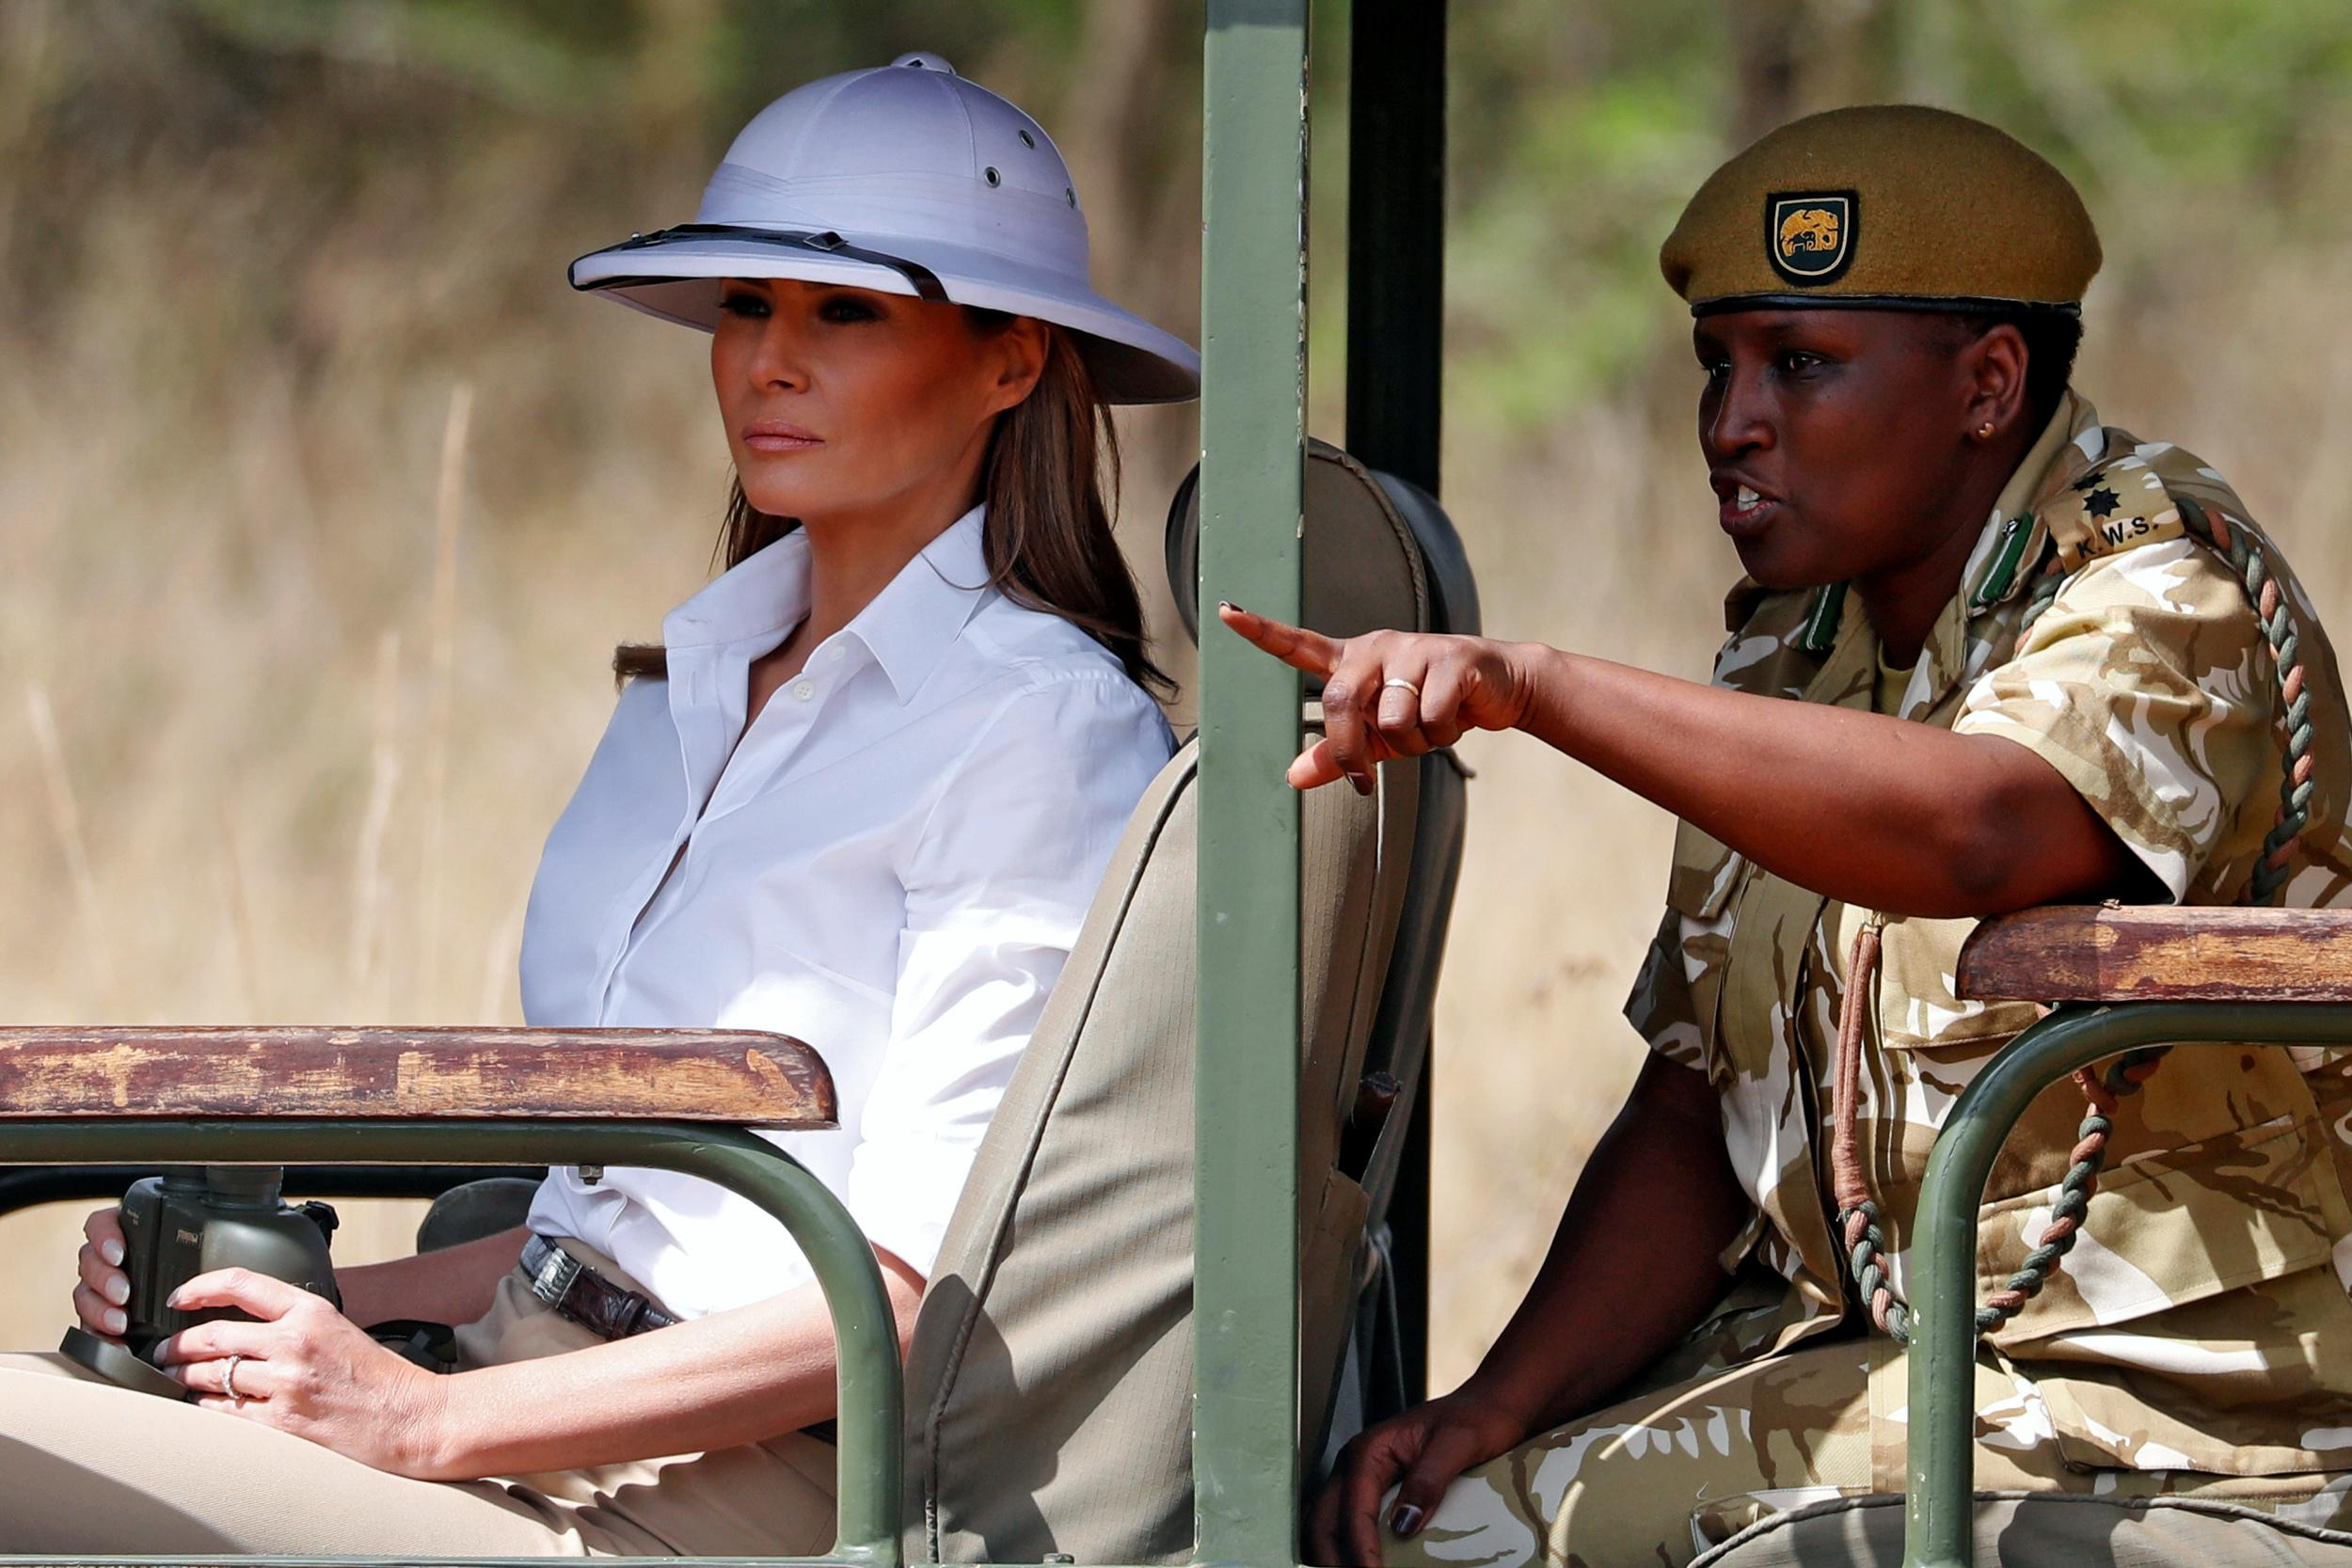 "<p>As part of her first solo international trip as first lady, Melania visited Nairobi National Park in a white pith helmet, which drew criticism for its colonial-era past. </p>  <p><strong>Read more <a href=""https://www.aol.com/article/lifestyle/2018/10/08/melania-trump-responds-to-helmet-flap-focus-on-what-i-do-not-what-i-wear/23554218/"">here</a>. </strong></p>"